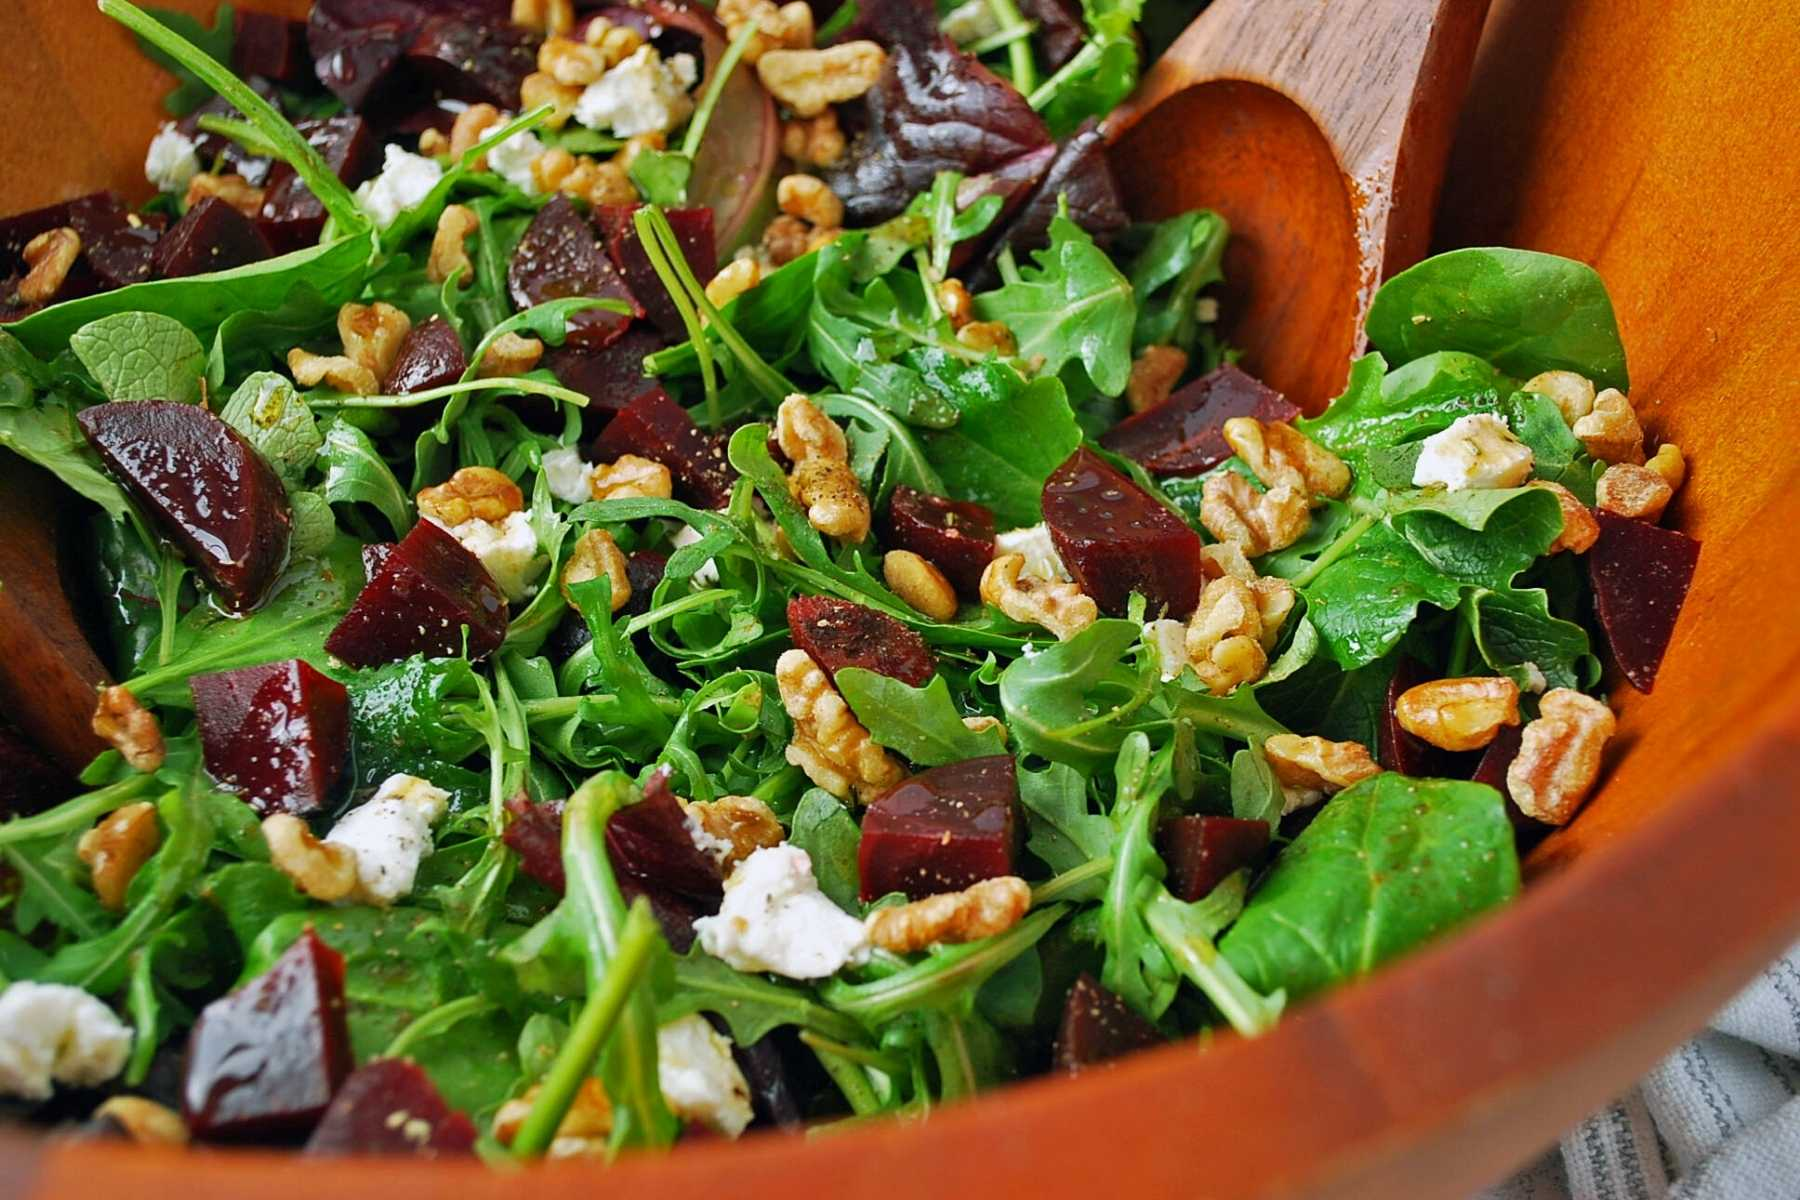 Side view of a serving bowl of beet salad with greens, goat cheese, walnuts, and dressing